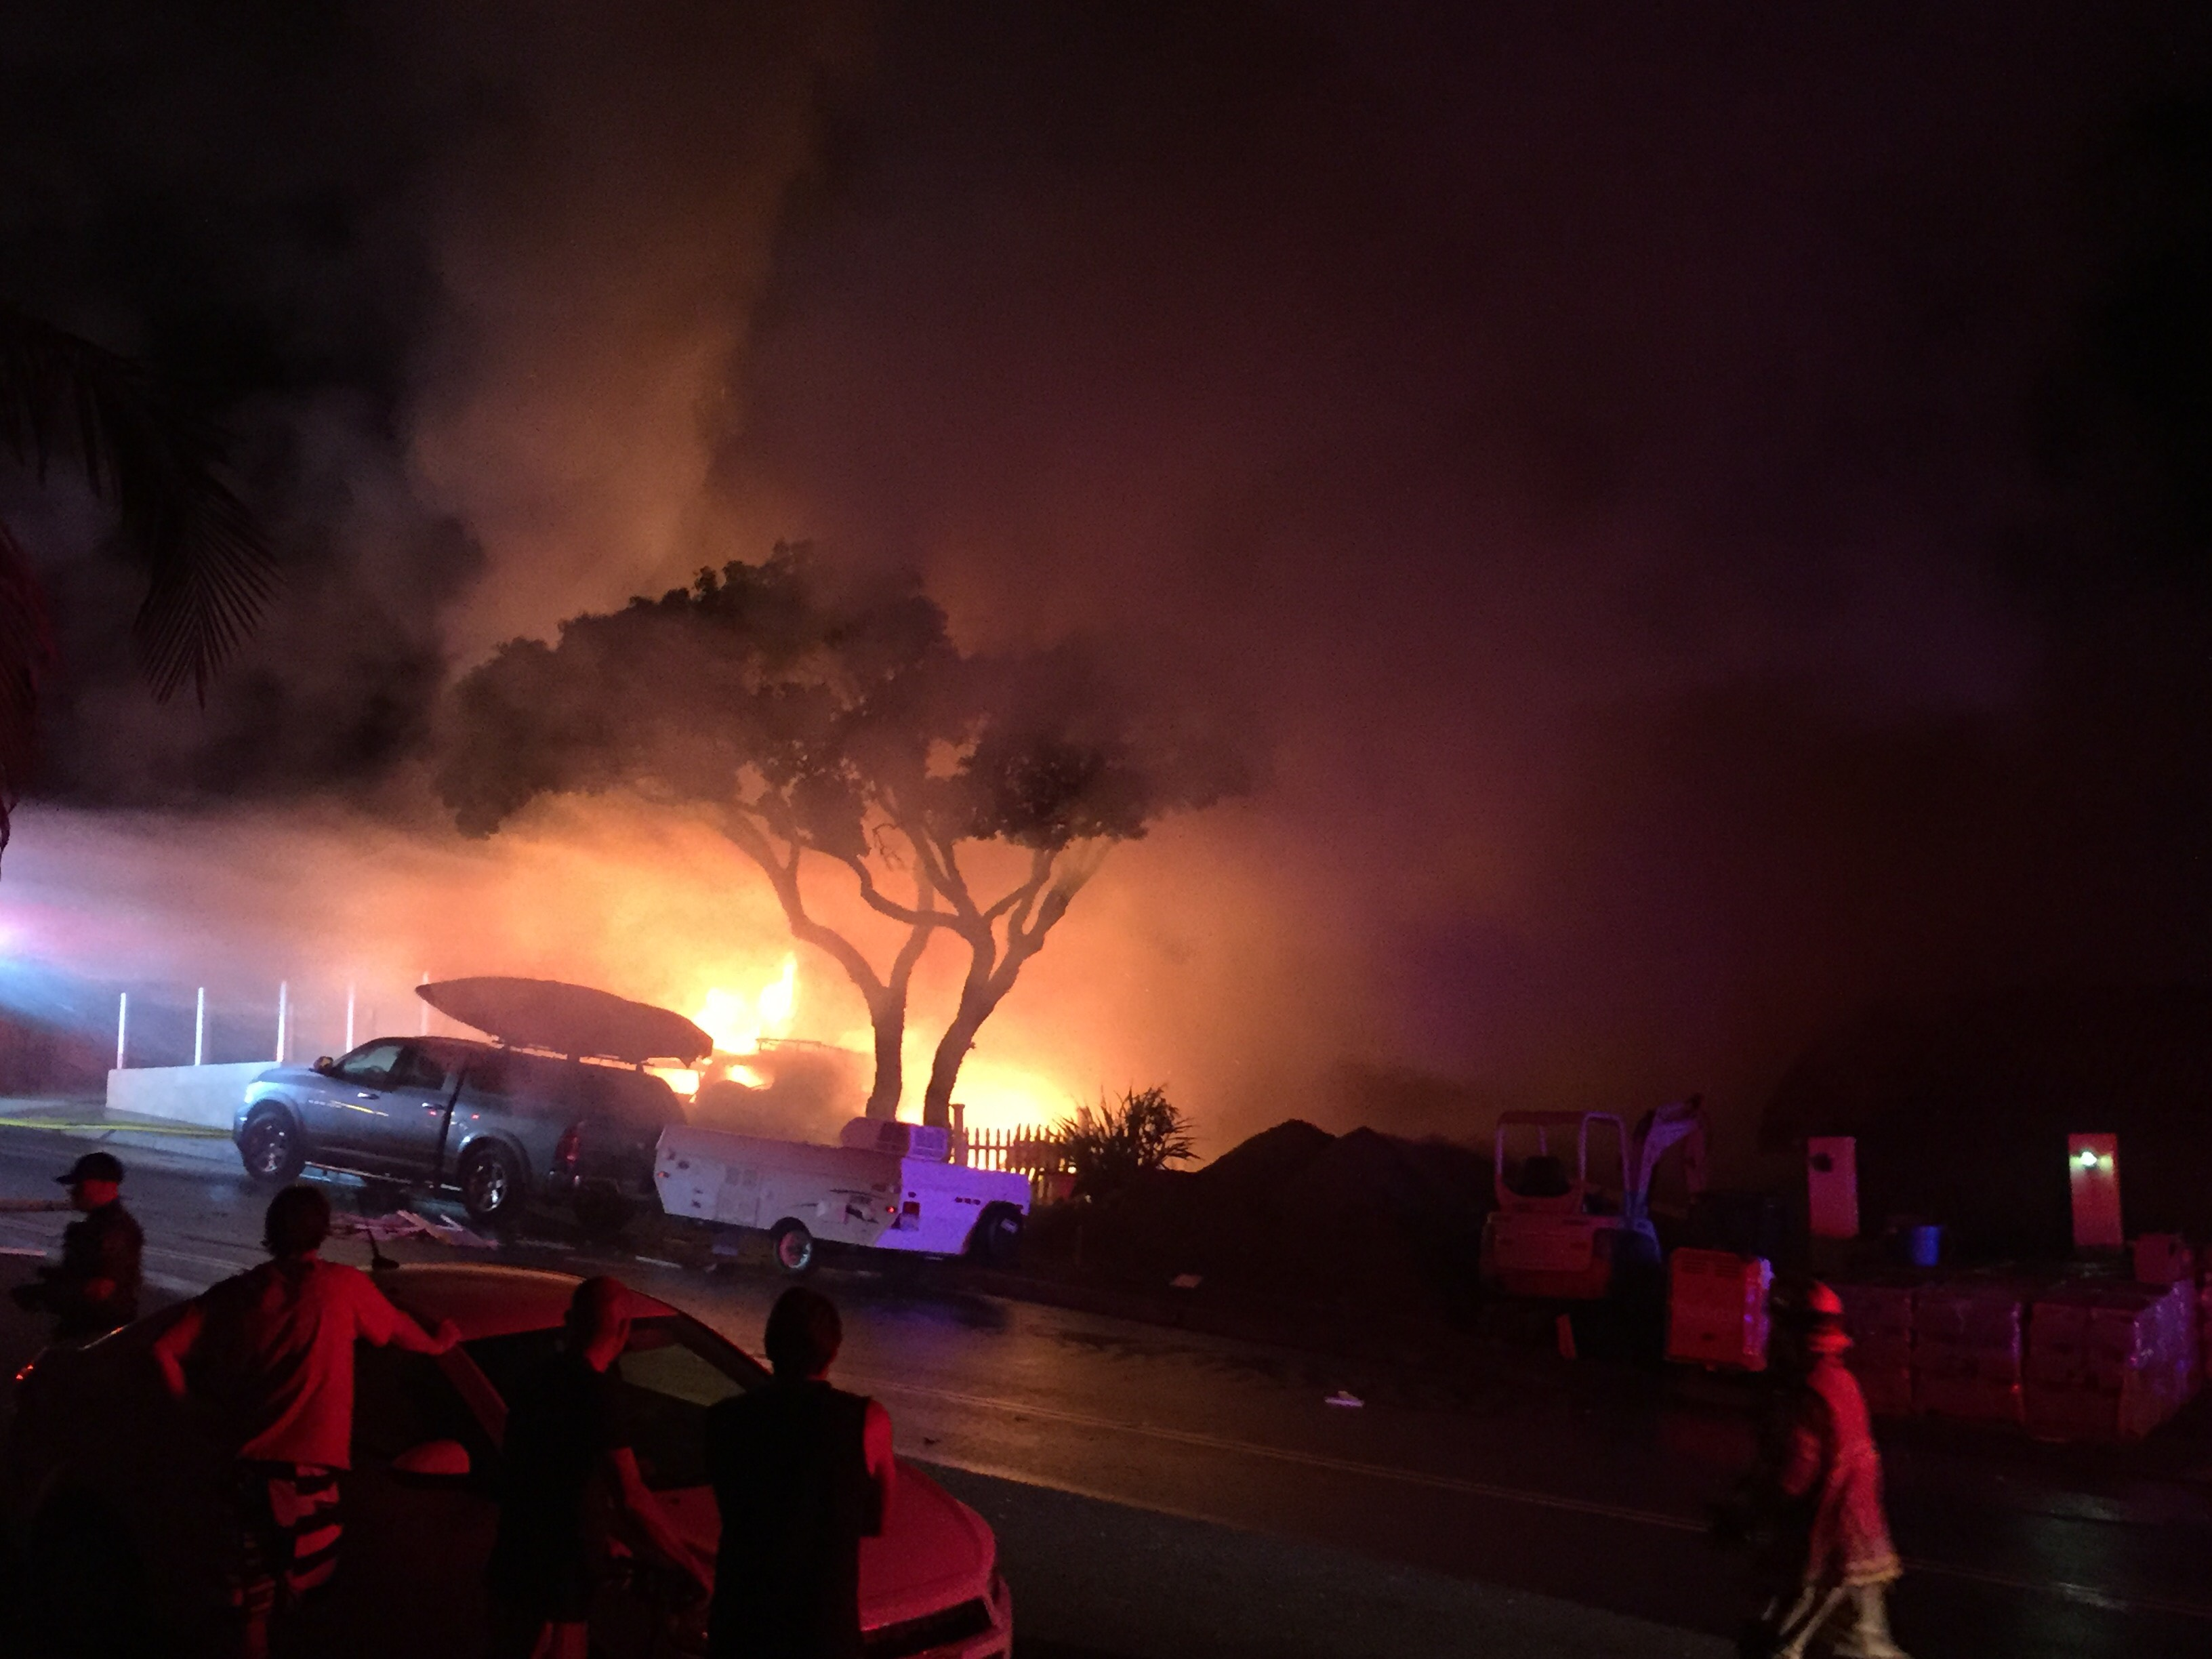 Flames could be seen from half a mile away after a ruptured gas line caused an explosion inside a garage on the 100 block of Avenida Dolores in San Clemente early Thursday morning, Aug. 24. Photo: Courtesy of Susan Goggins